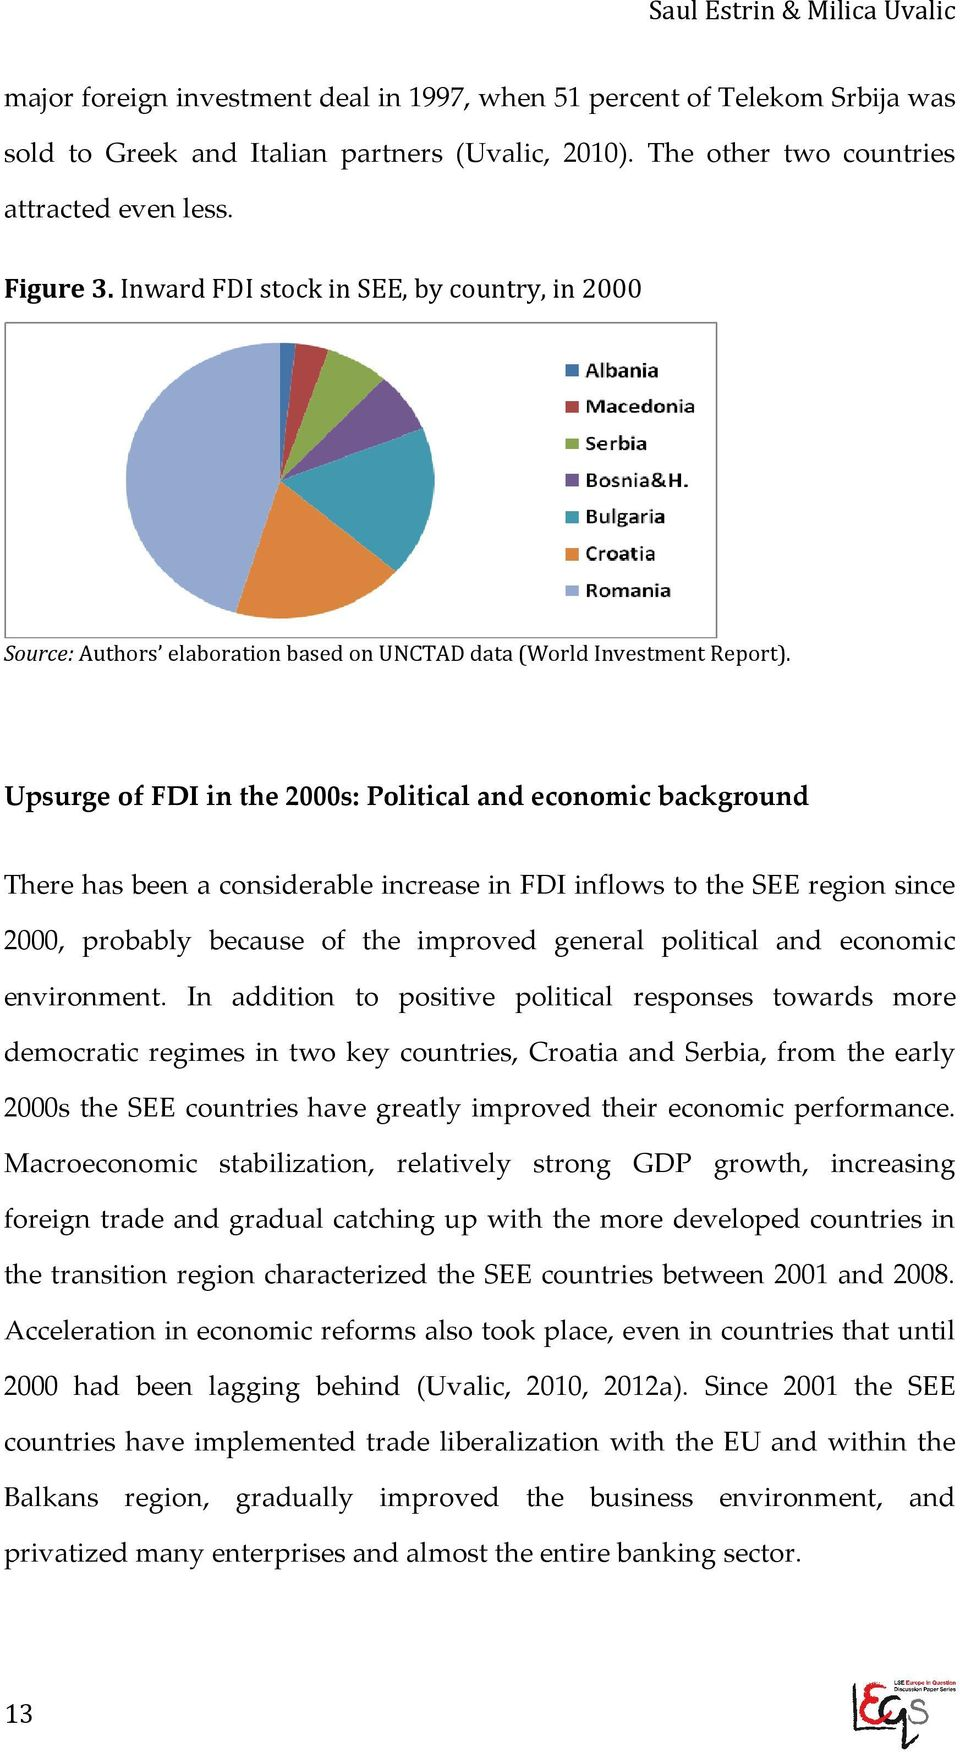 Upsurge of FDI in the 2000s: Political and economic background There has been a considerable increase in FDI inflows to the SEE region since 2000, probably because of the improved general political